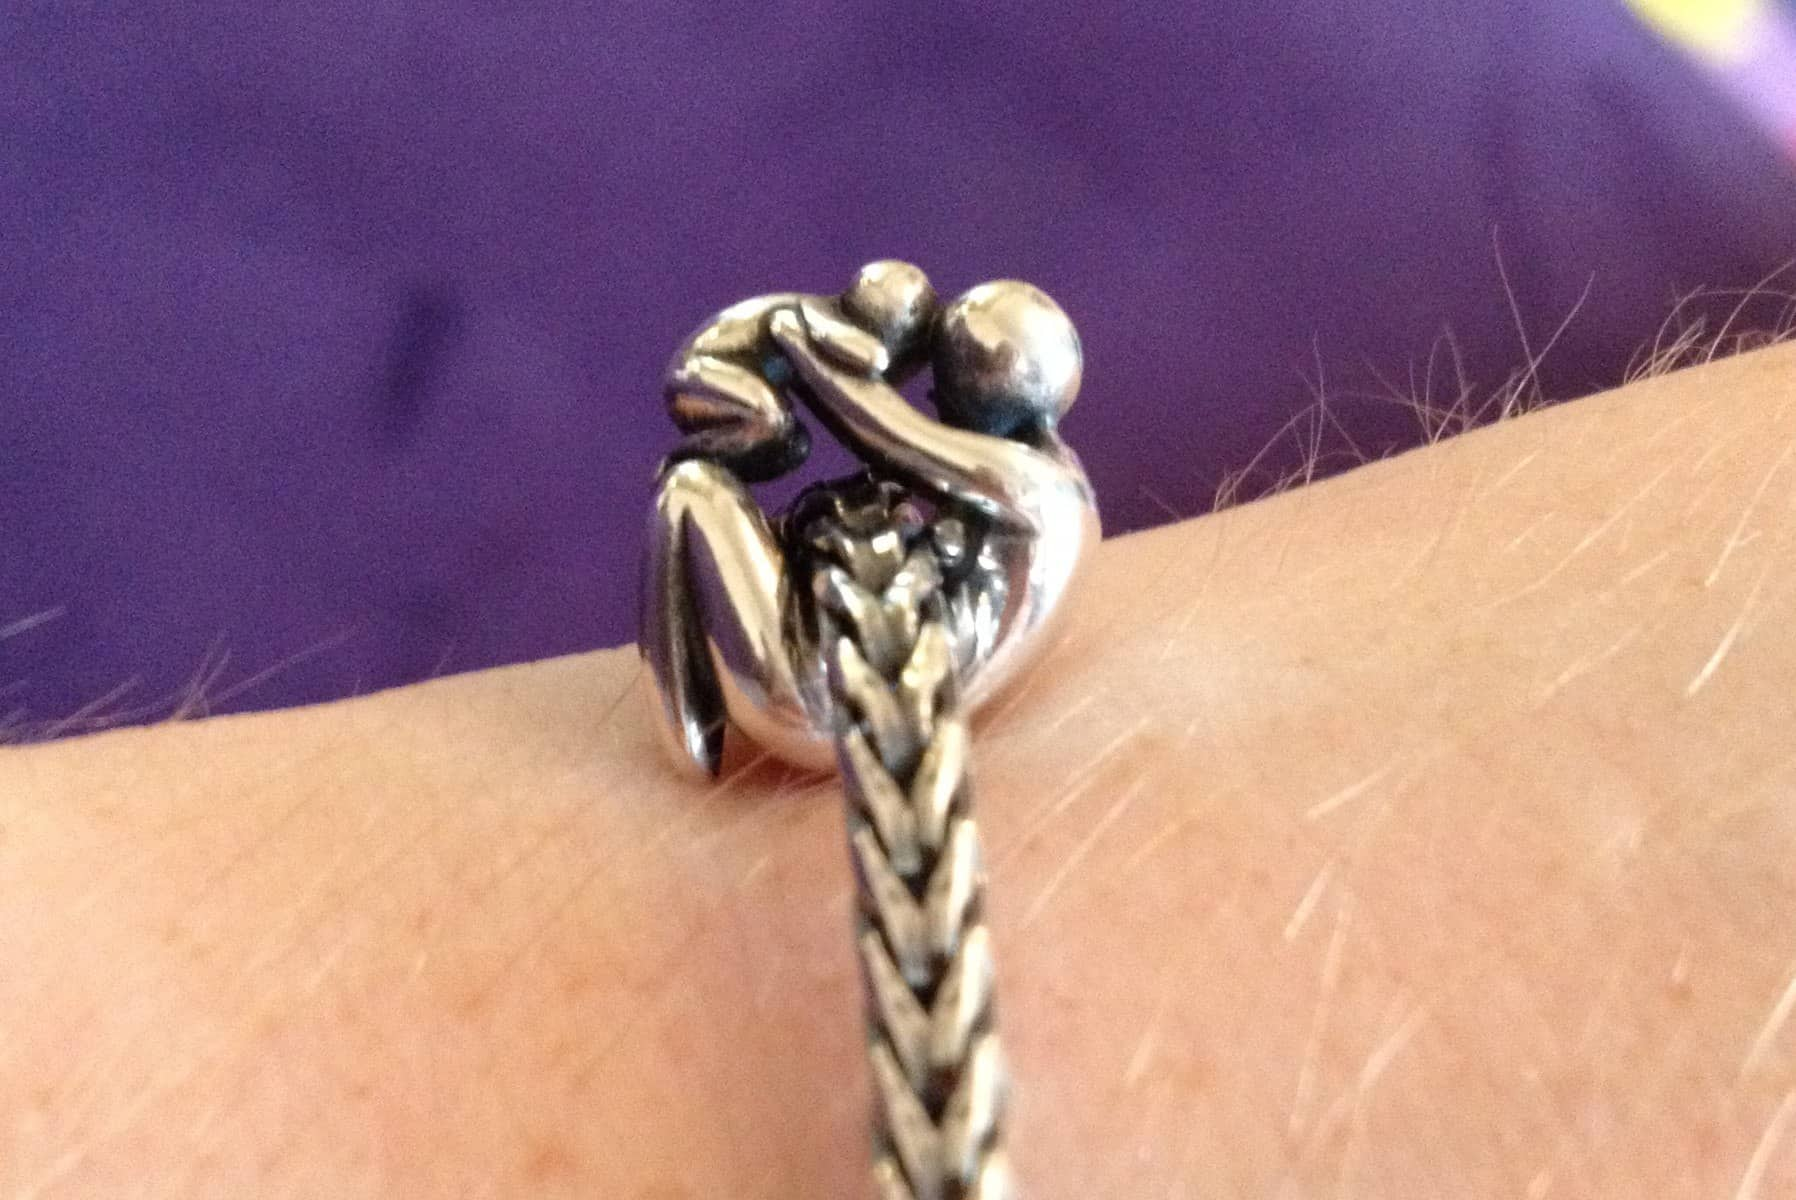 Review: Trollbeads Bracelet